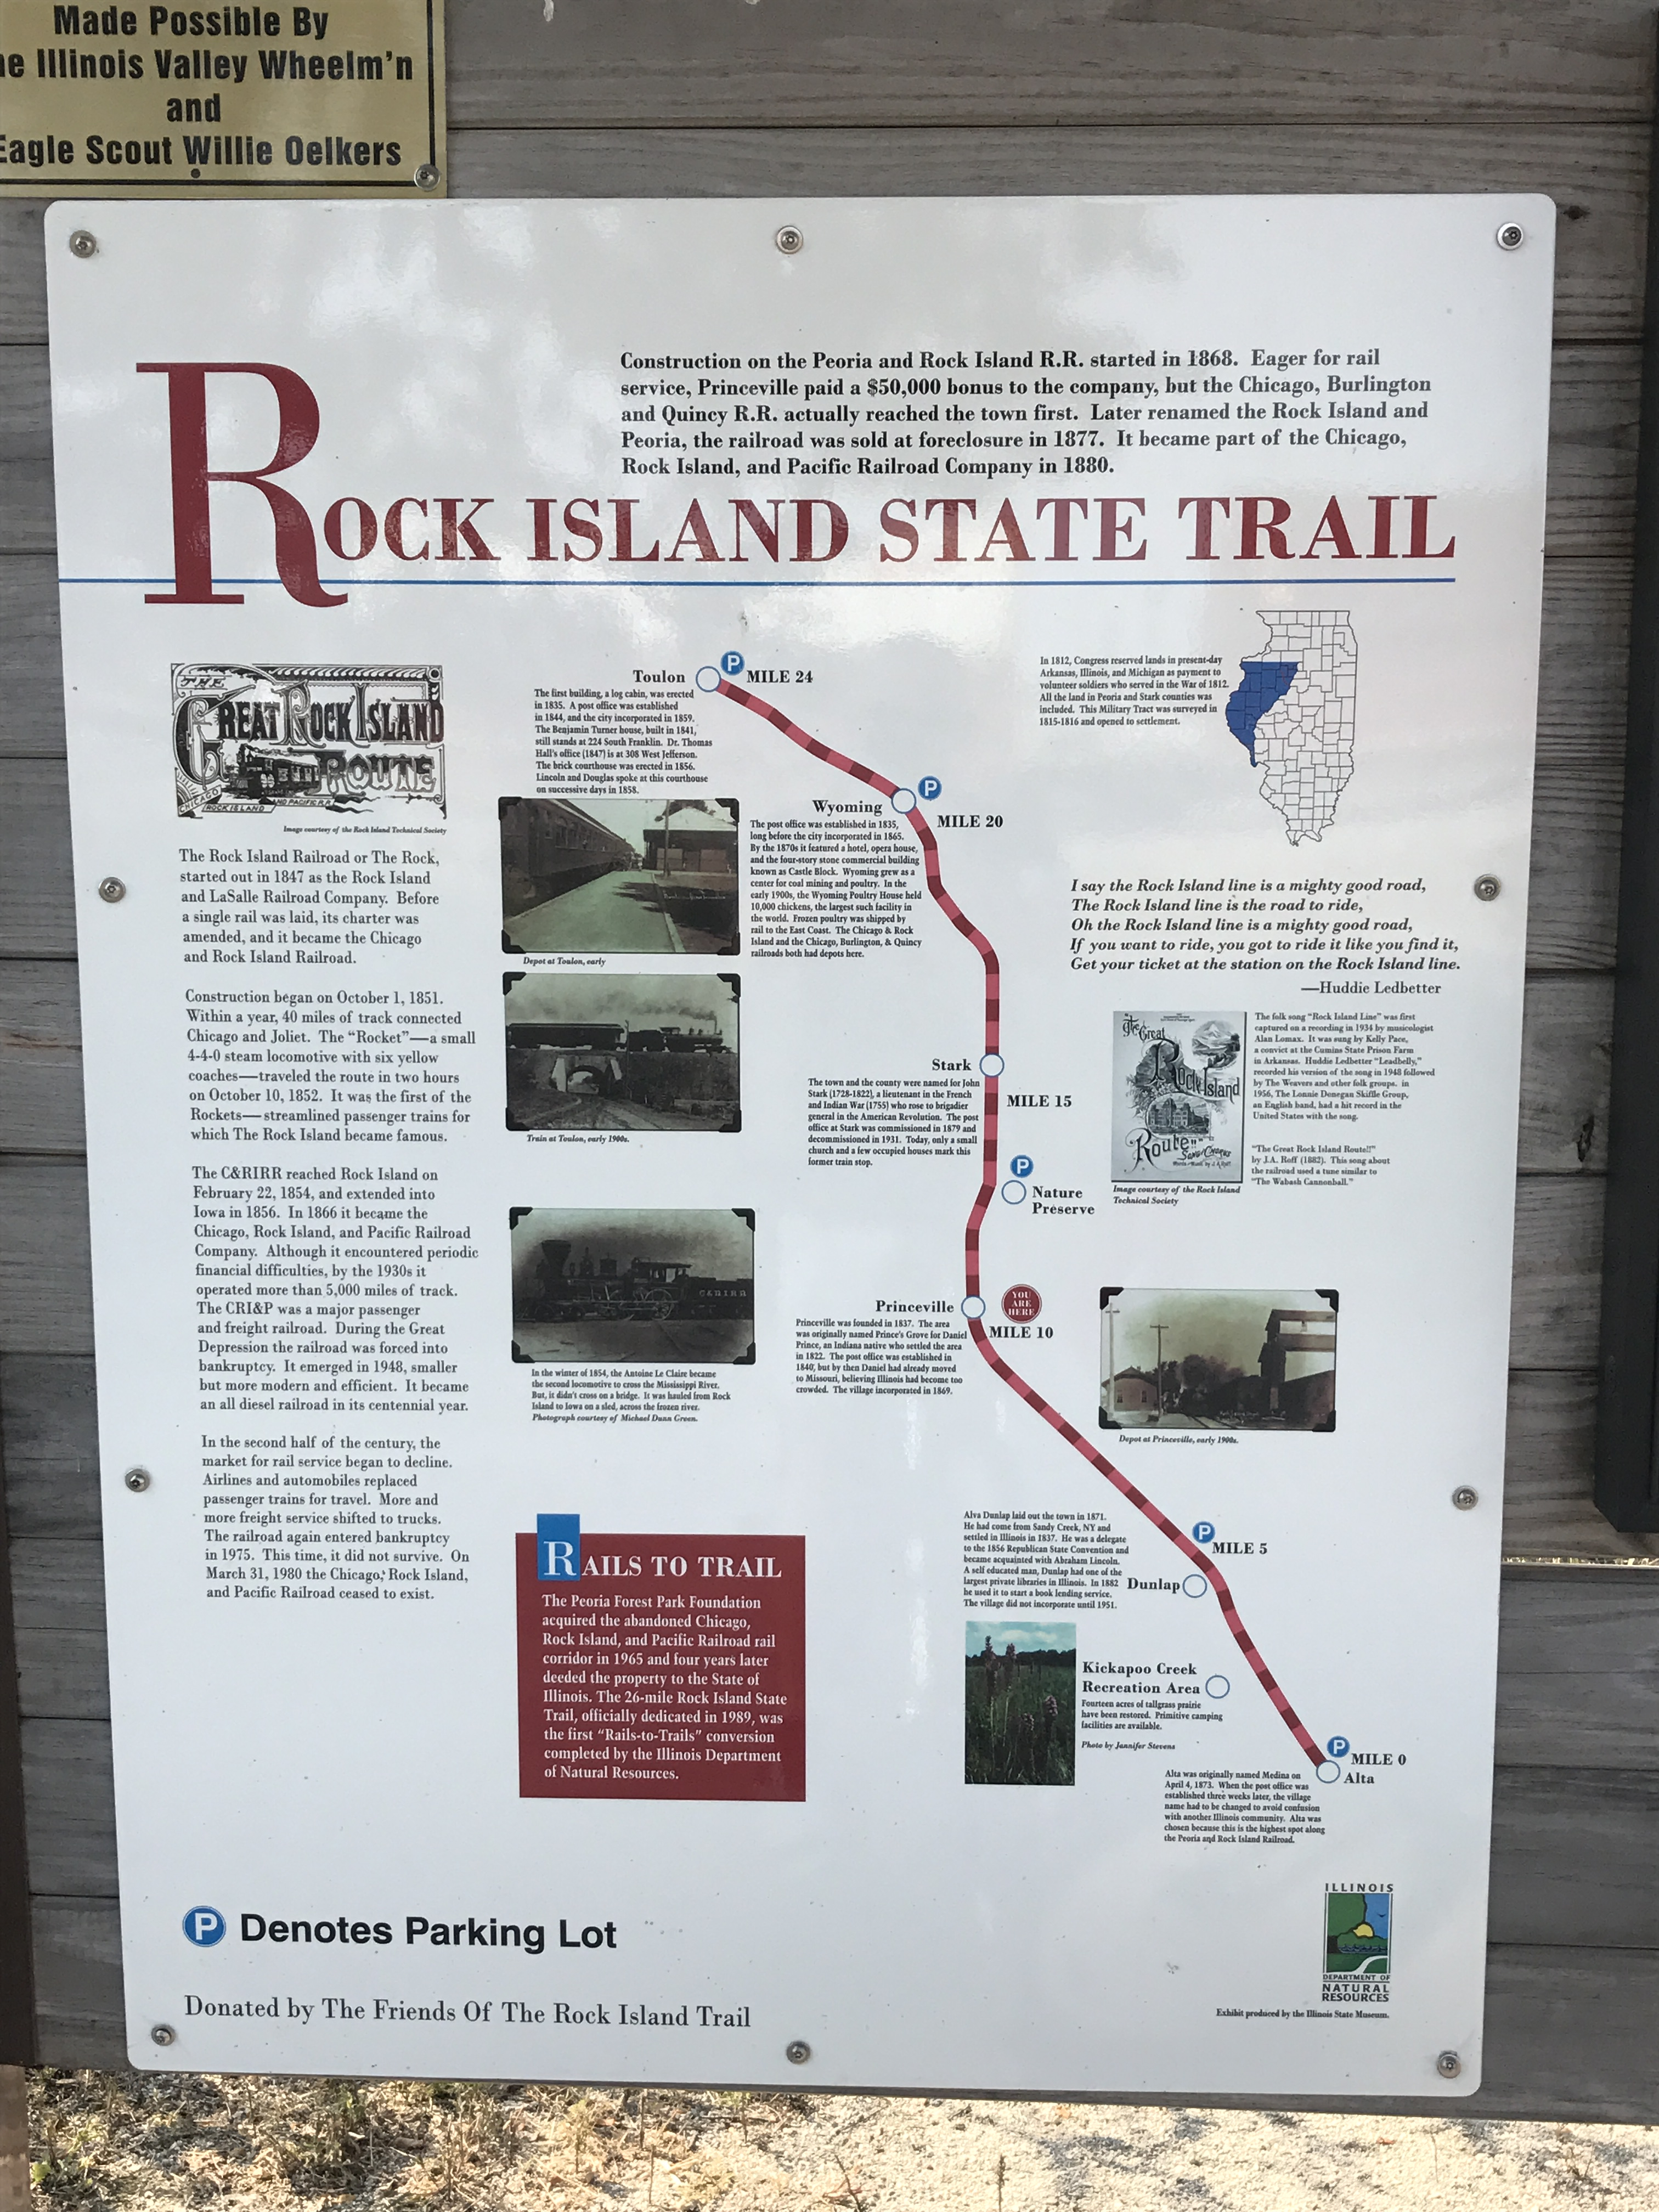 State trail map